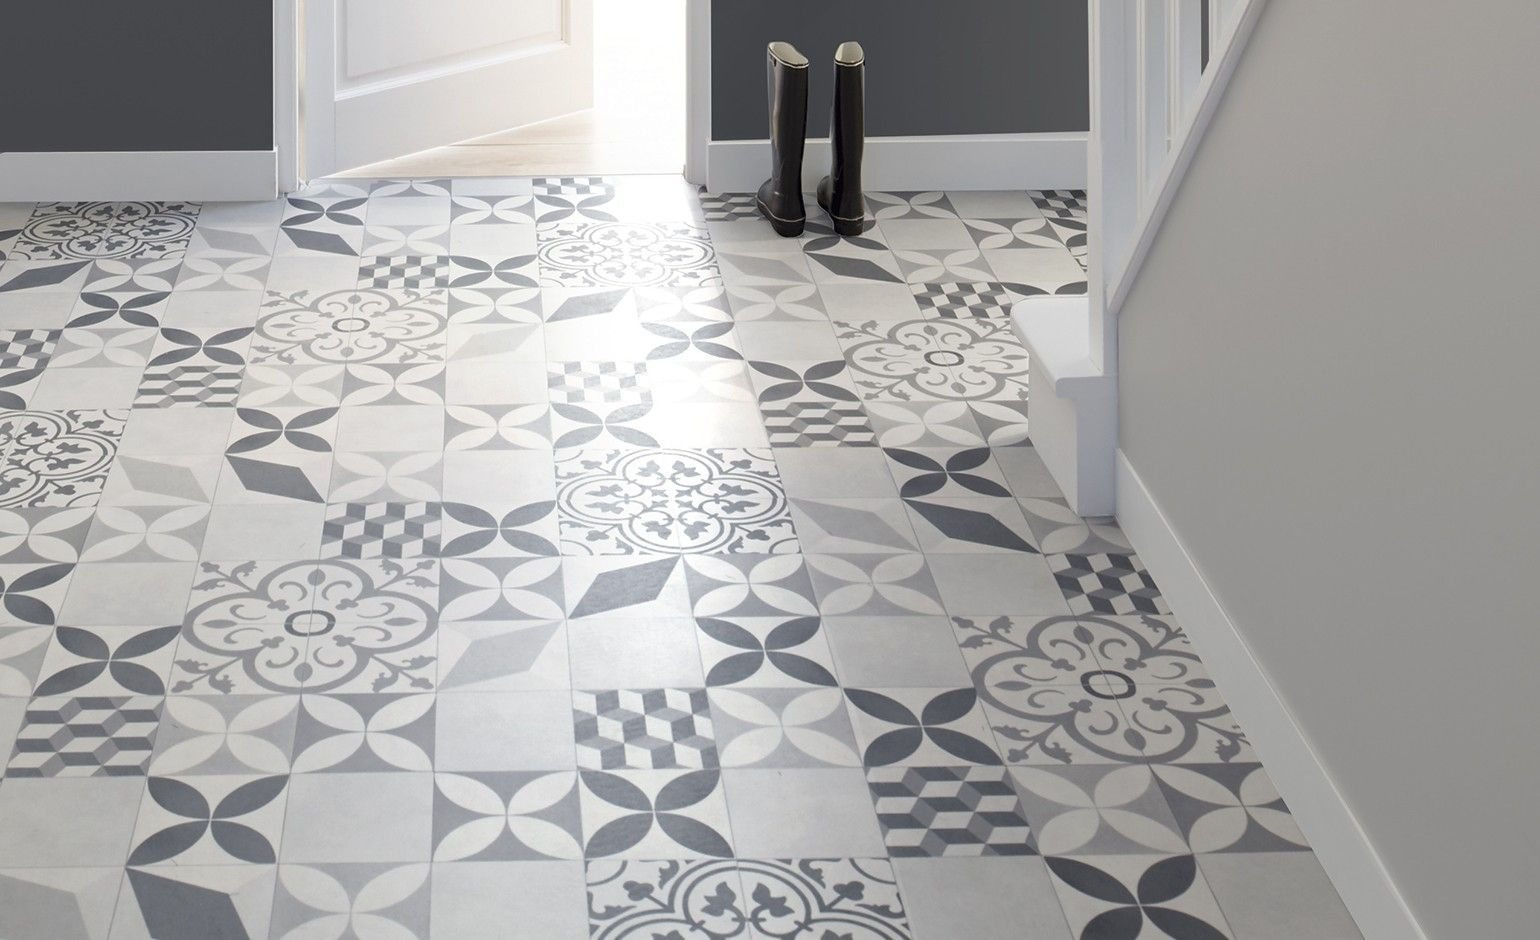 Carreaux Ciment Toulouse Saint Maclou Sol Vinyle Texas New Carreau Ciment Gris Et Noir